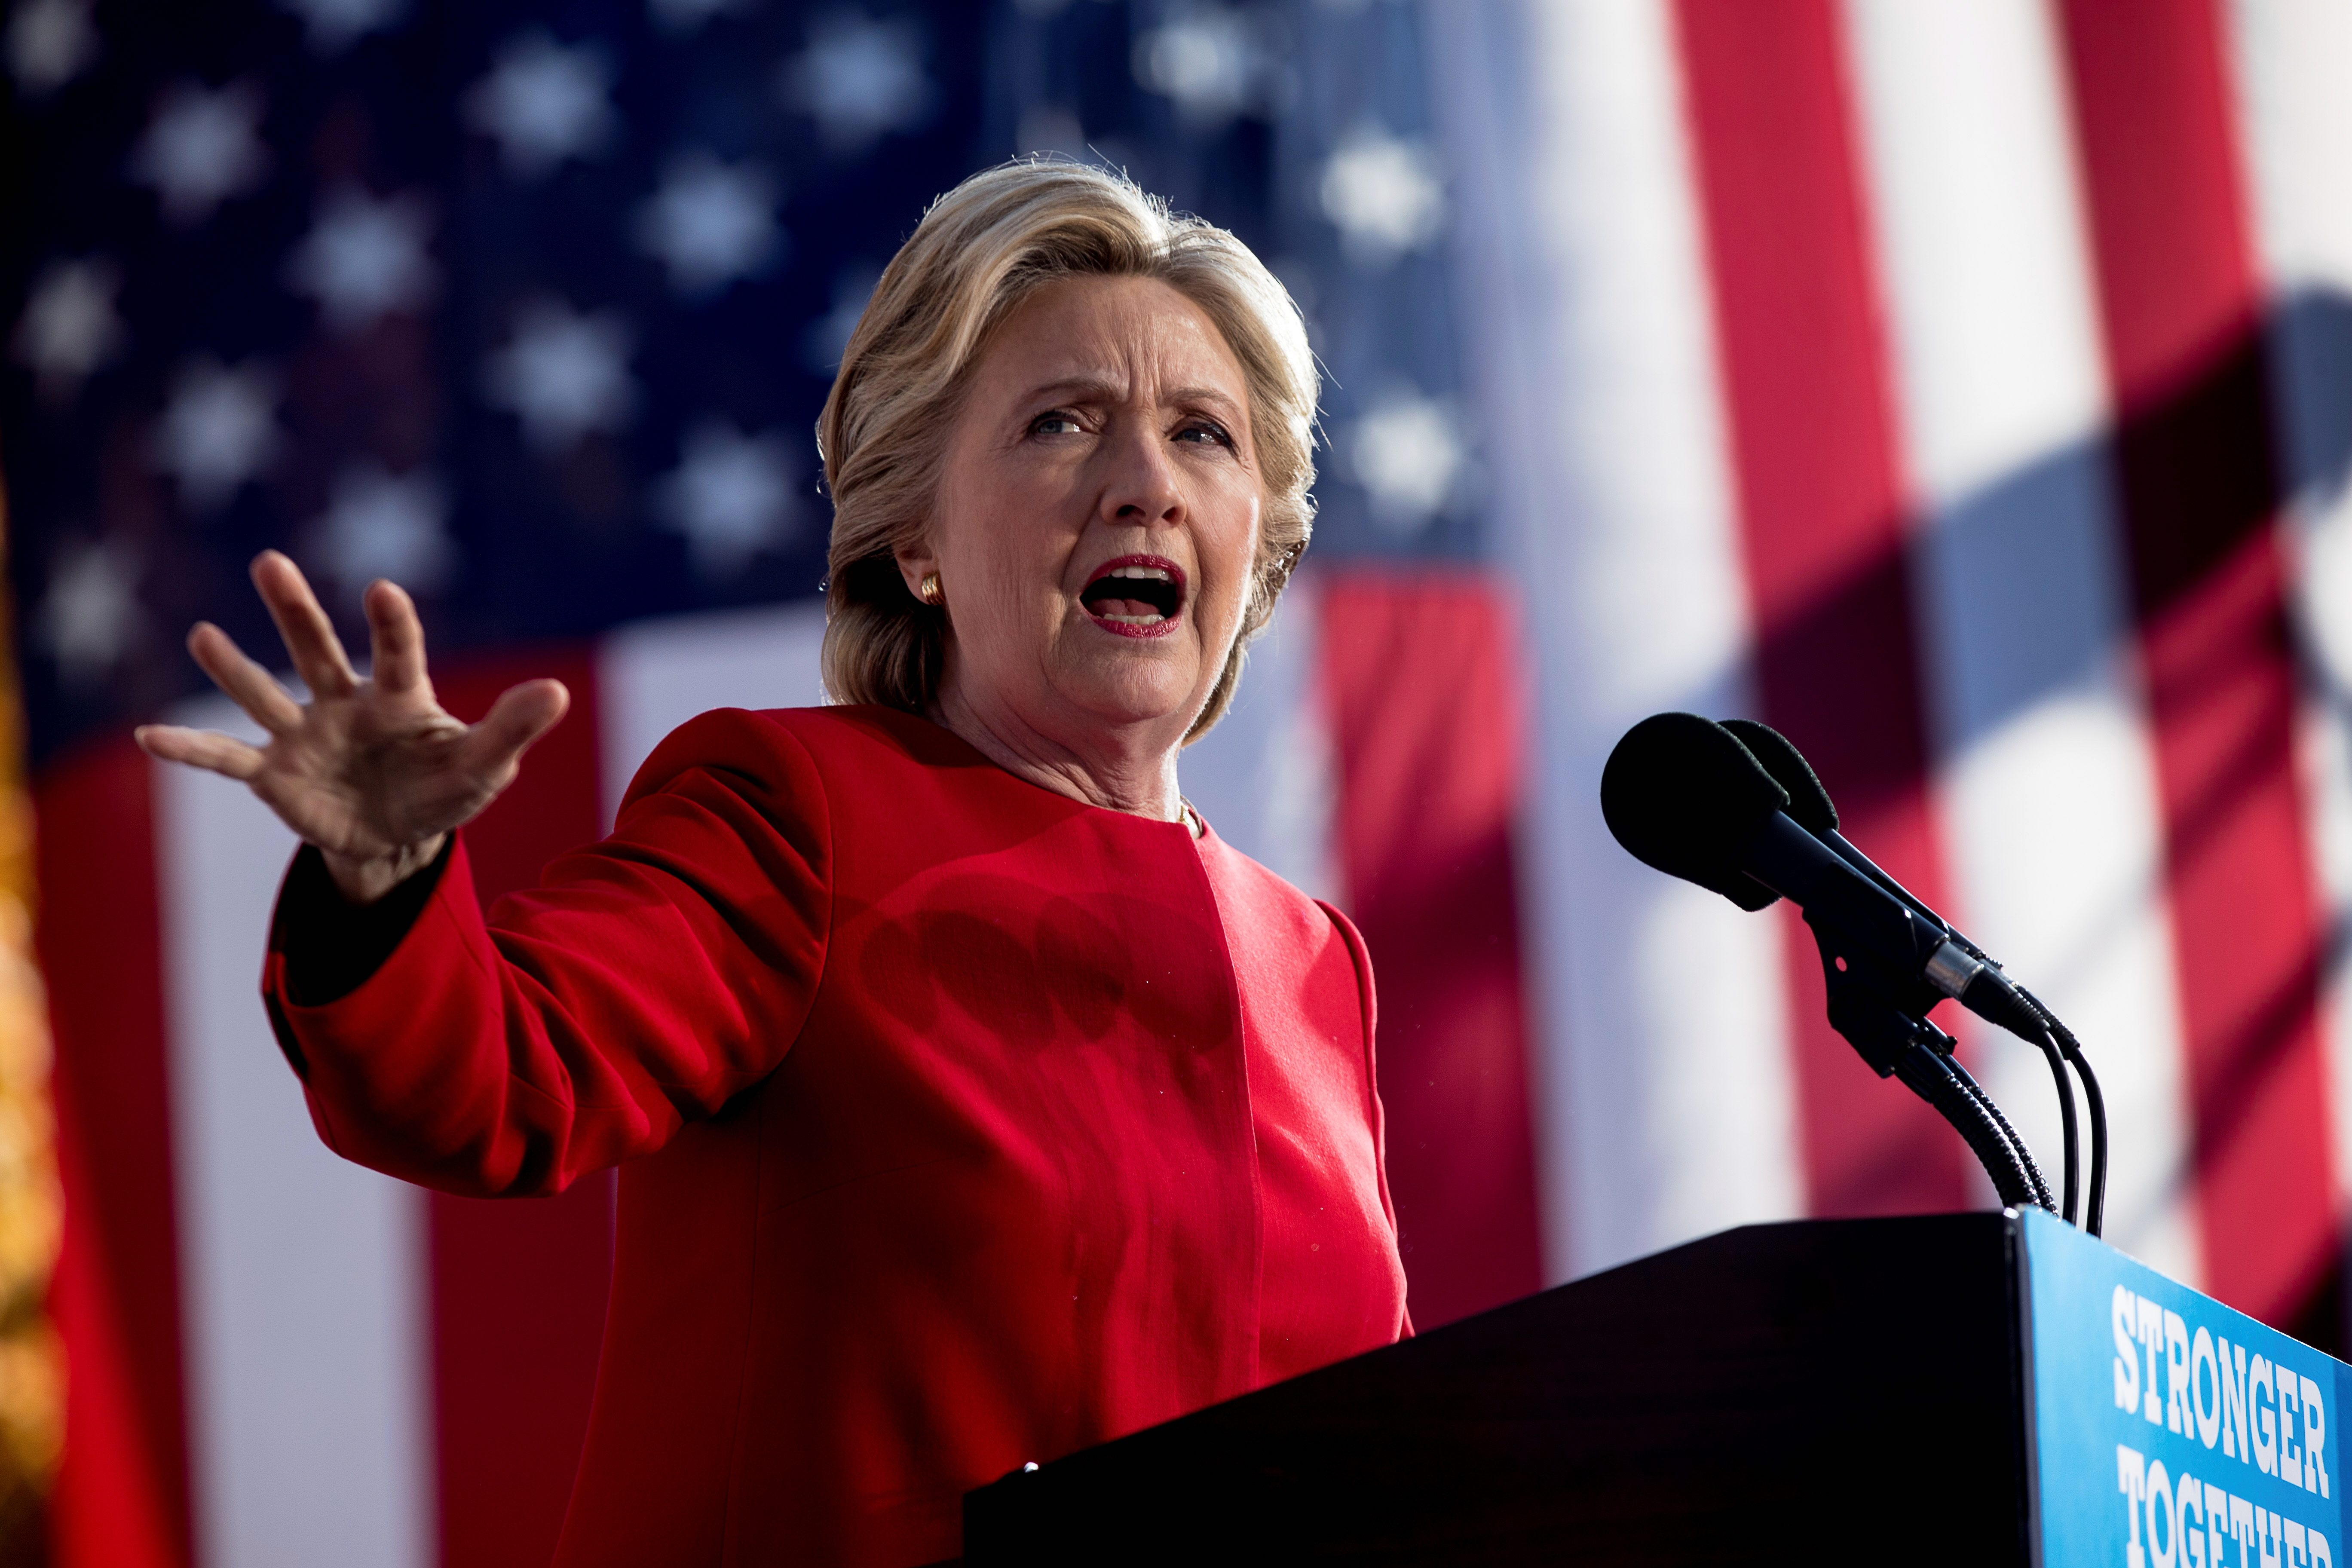 Clinton campaign broke election laws with dossier author payment, lawsuit claims